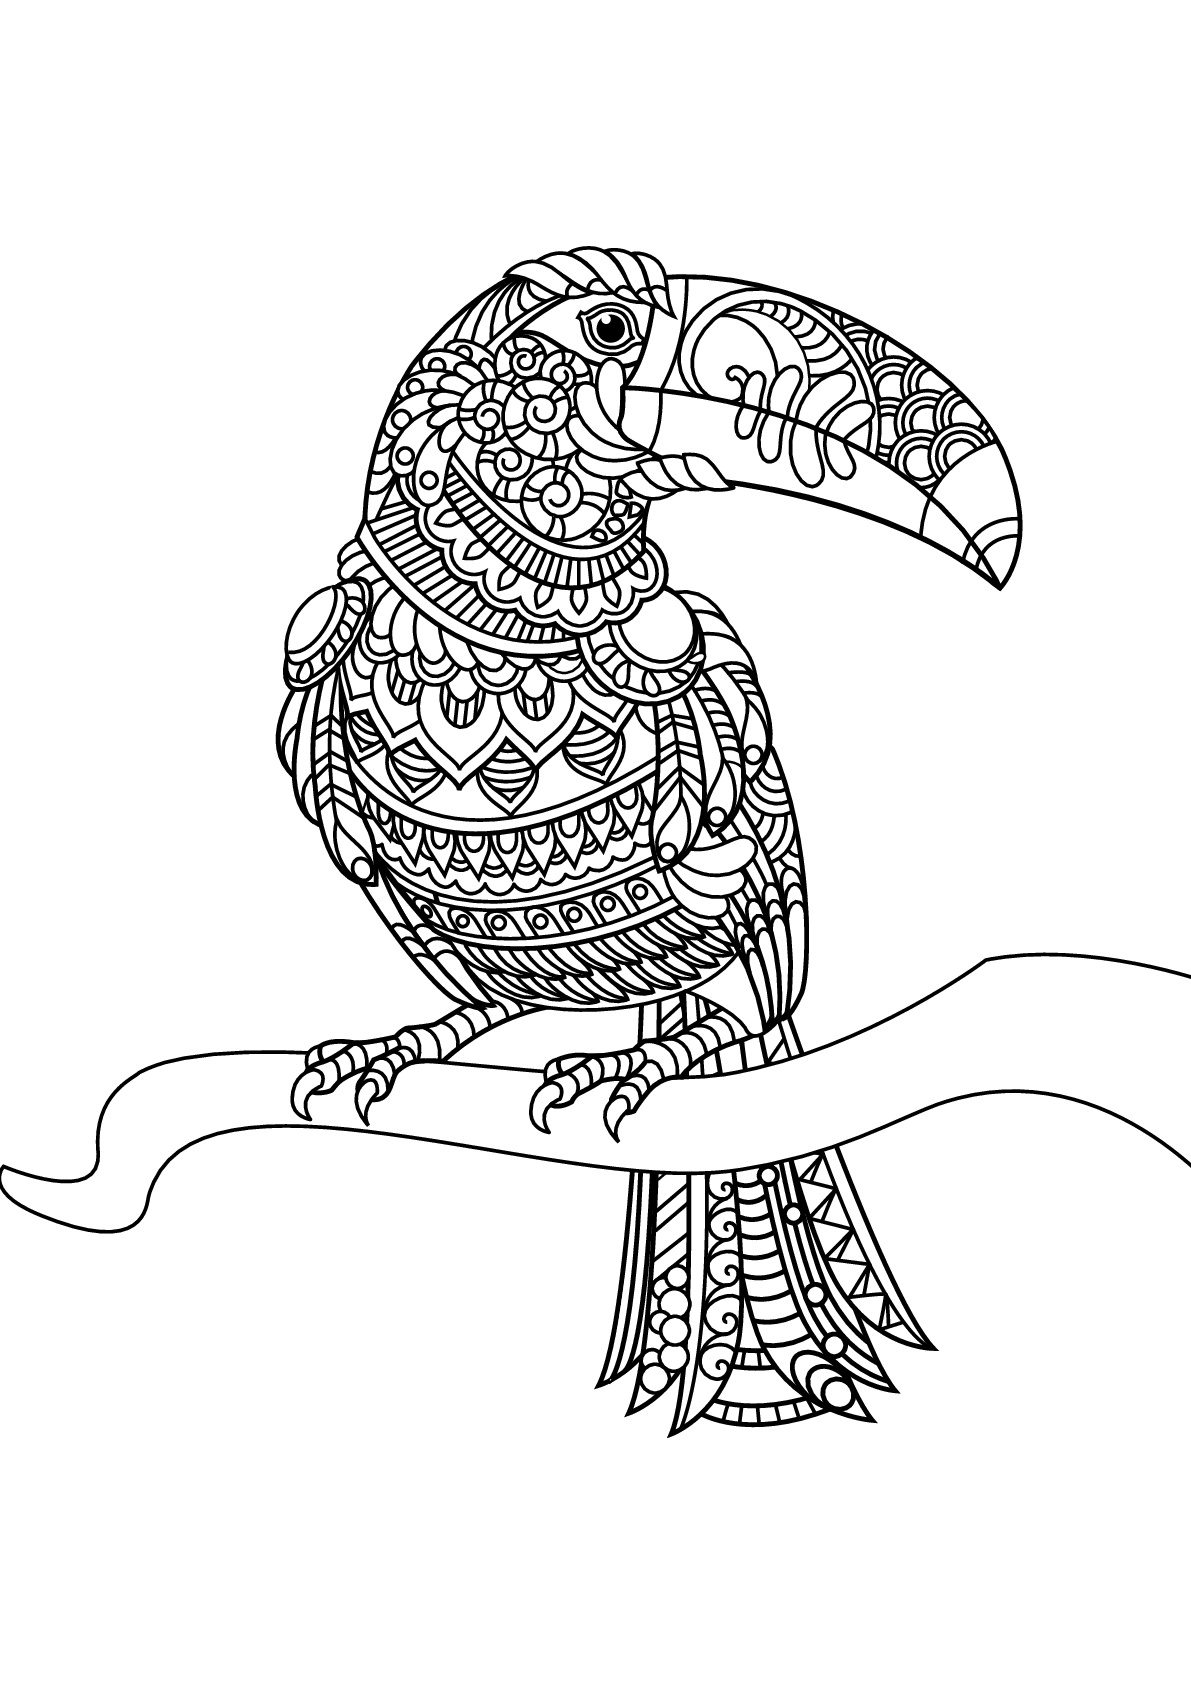 toucan coloring best toco toucan illustrations royalty free vector coloring toucan